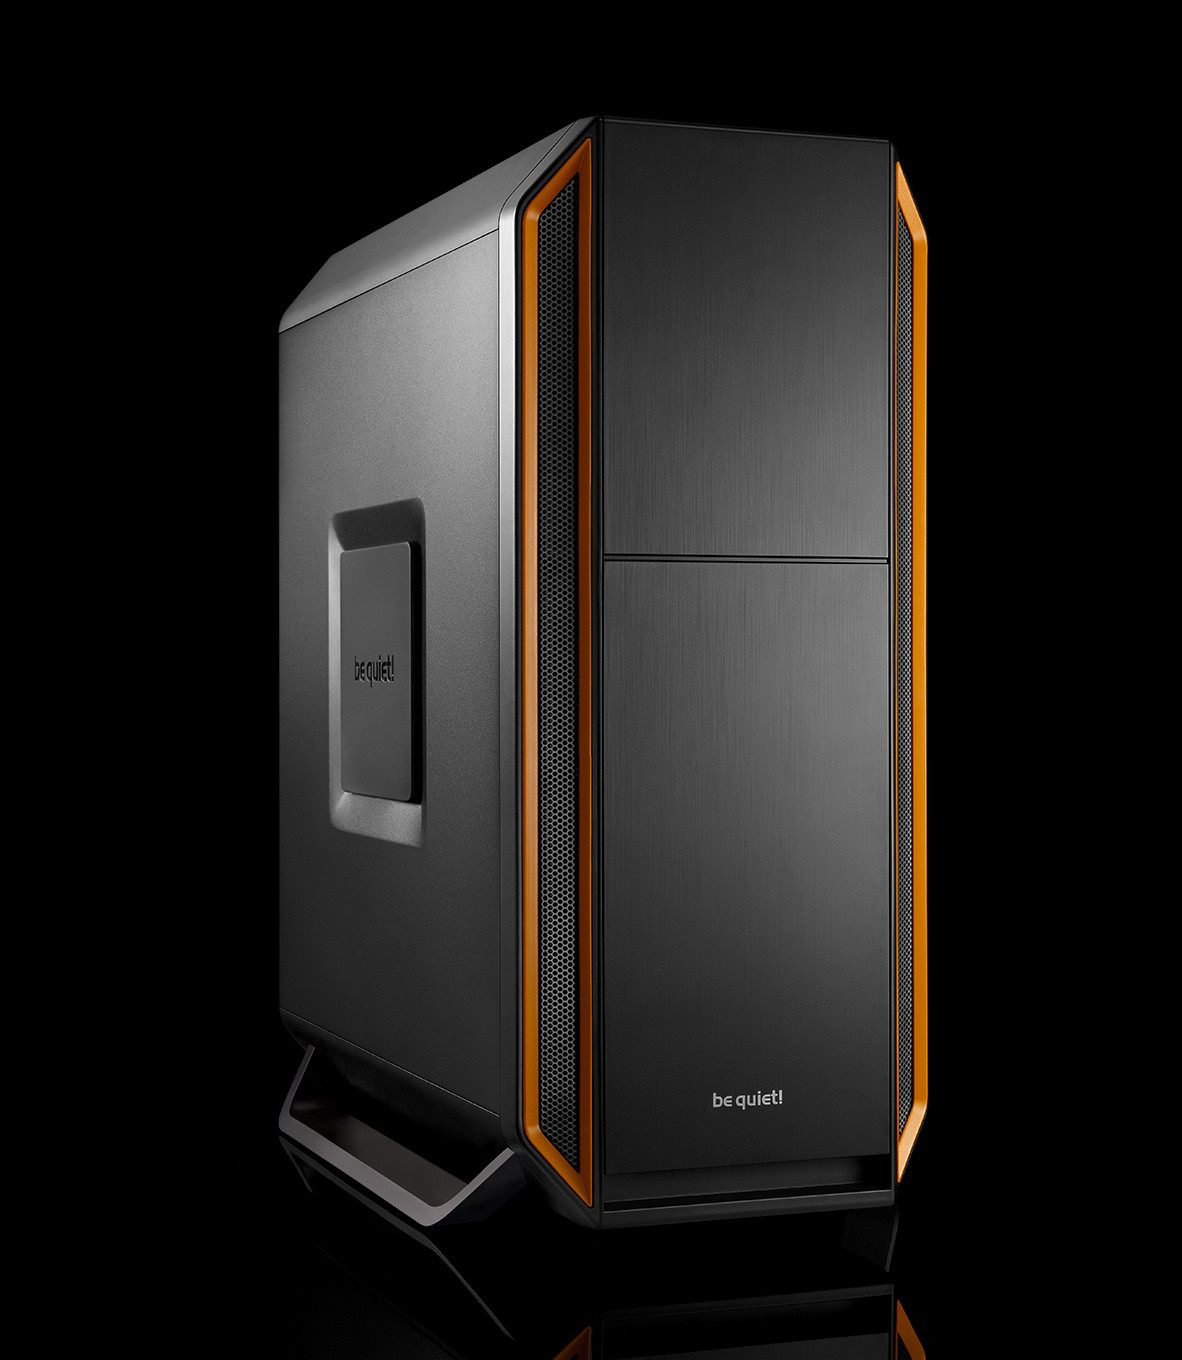 Be Quiet Announces Its First High End Pc Case Techpowerup